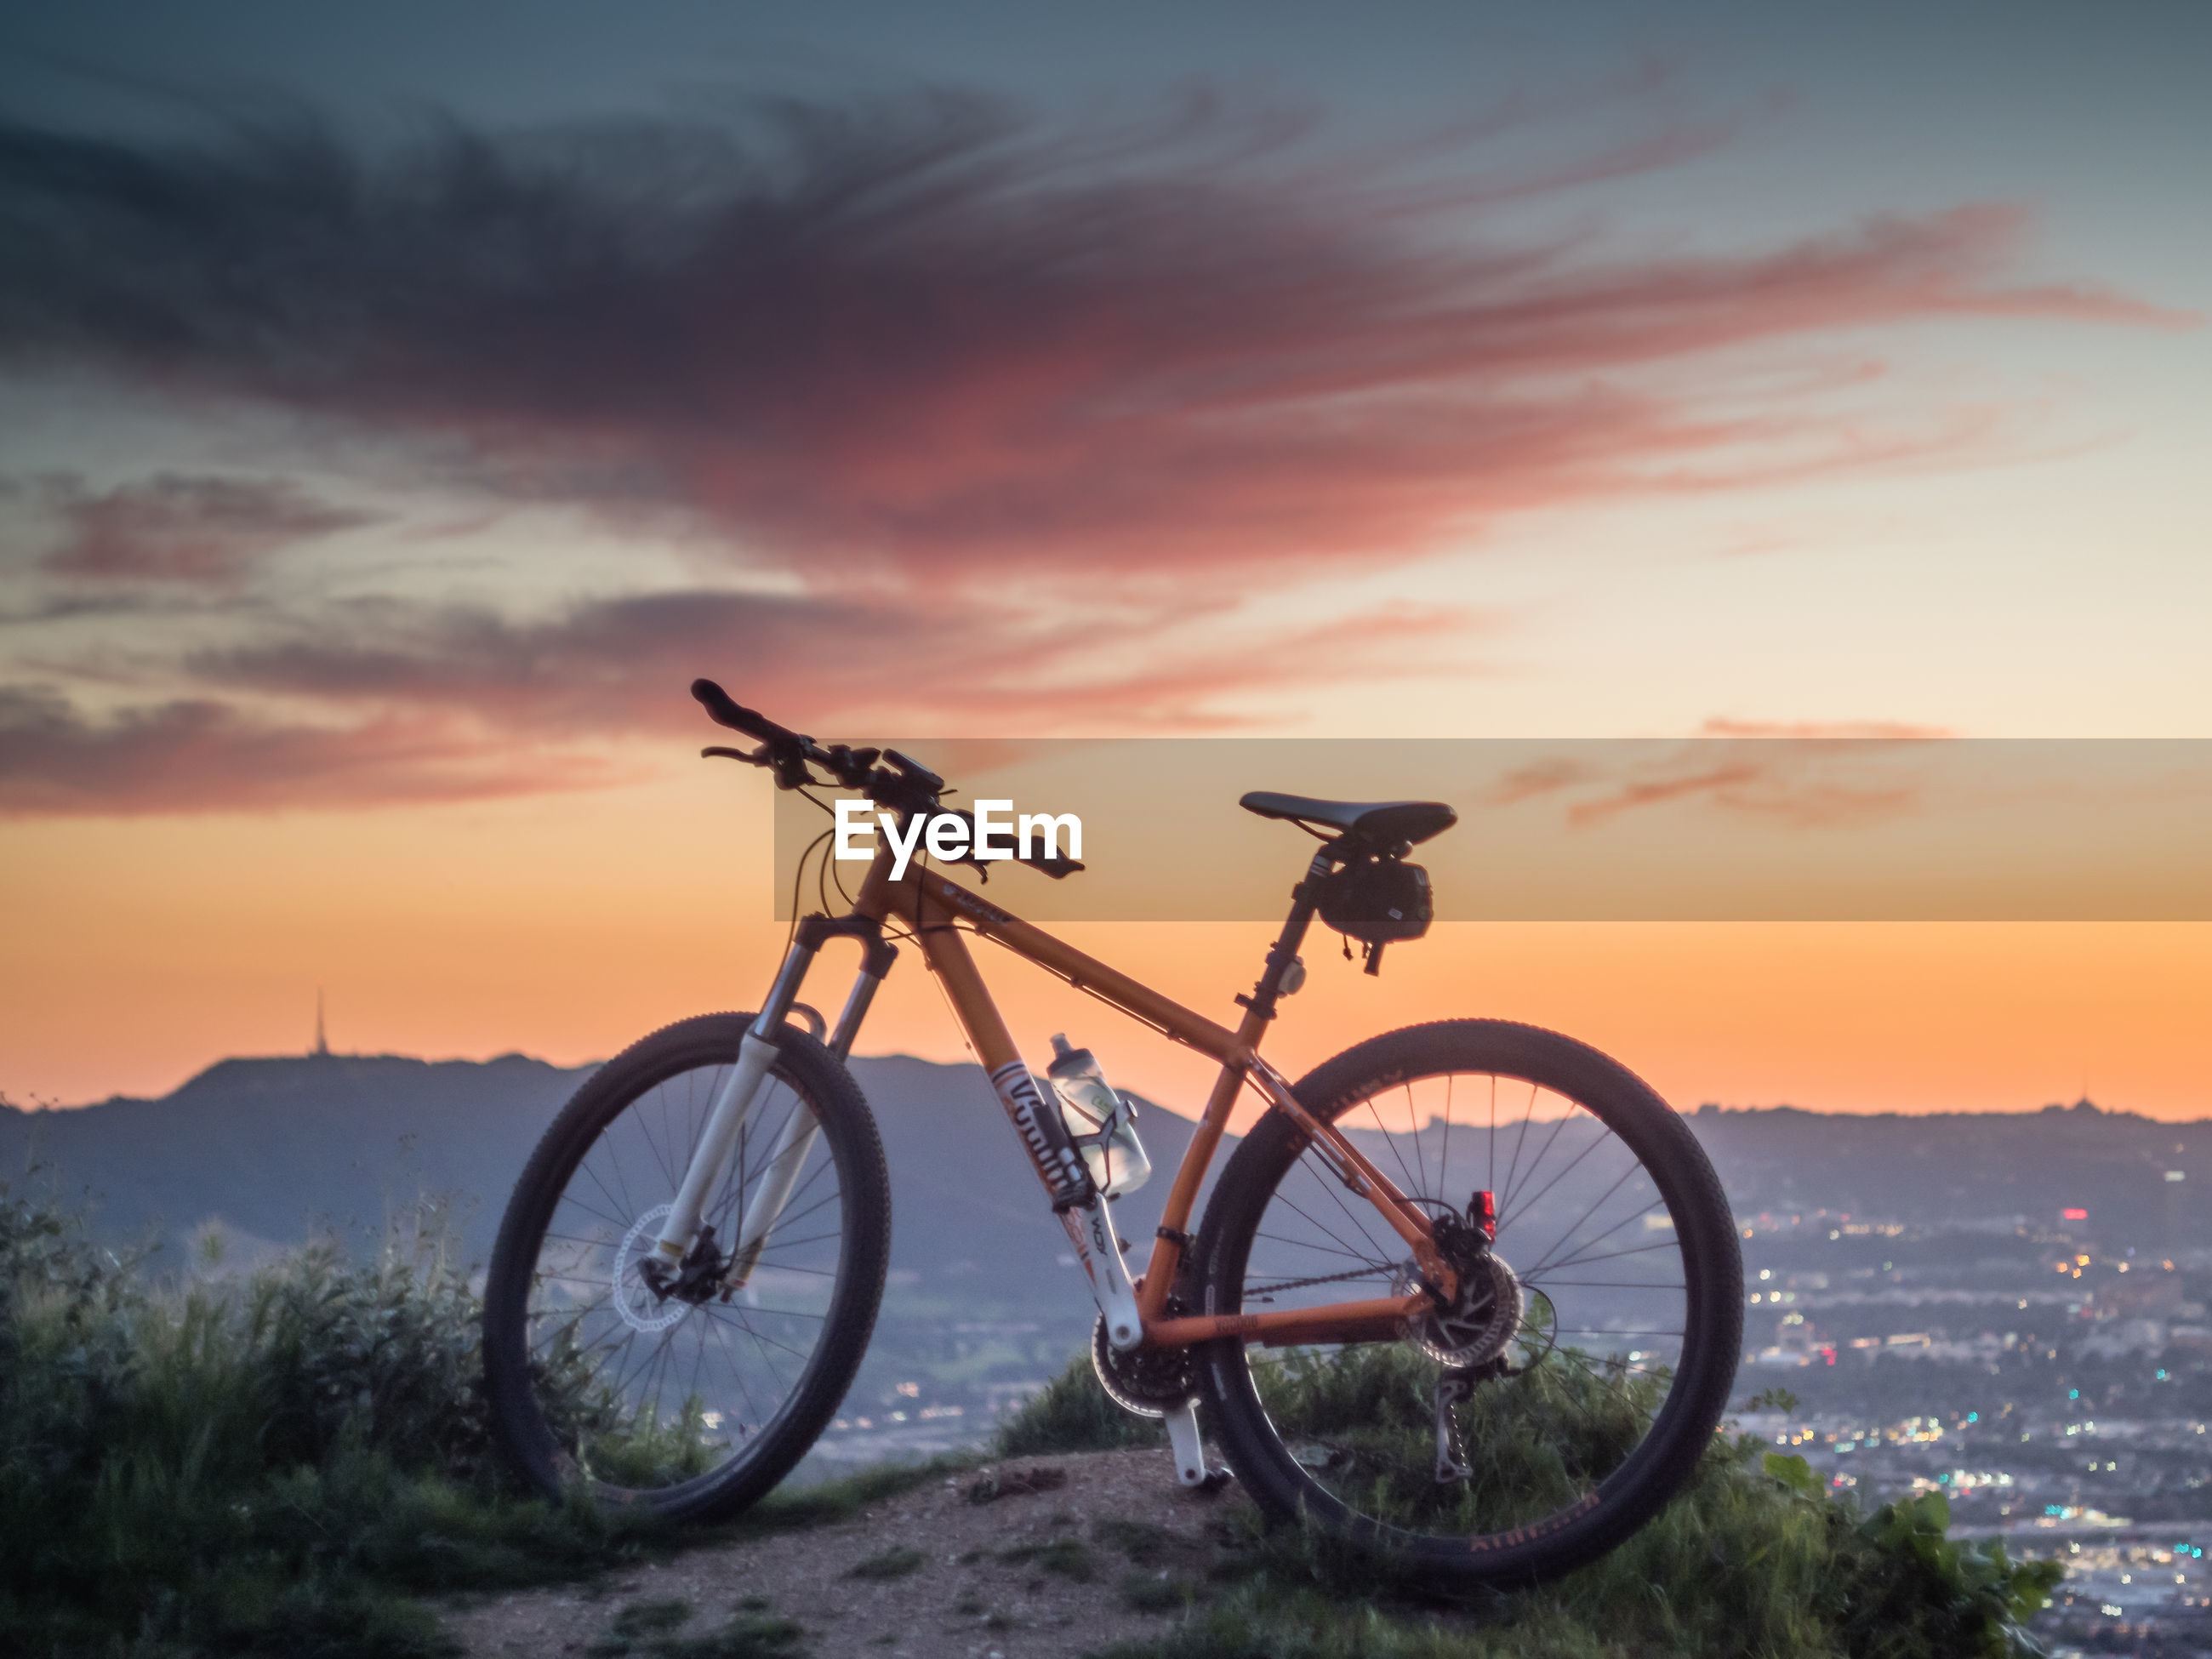 BICYCLE AGAINST TREES DURING SUNSET